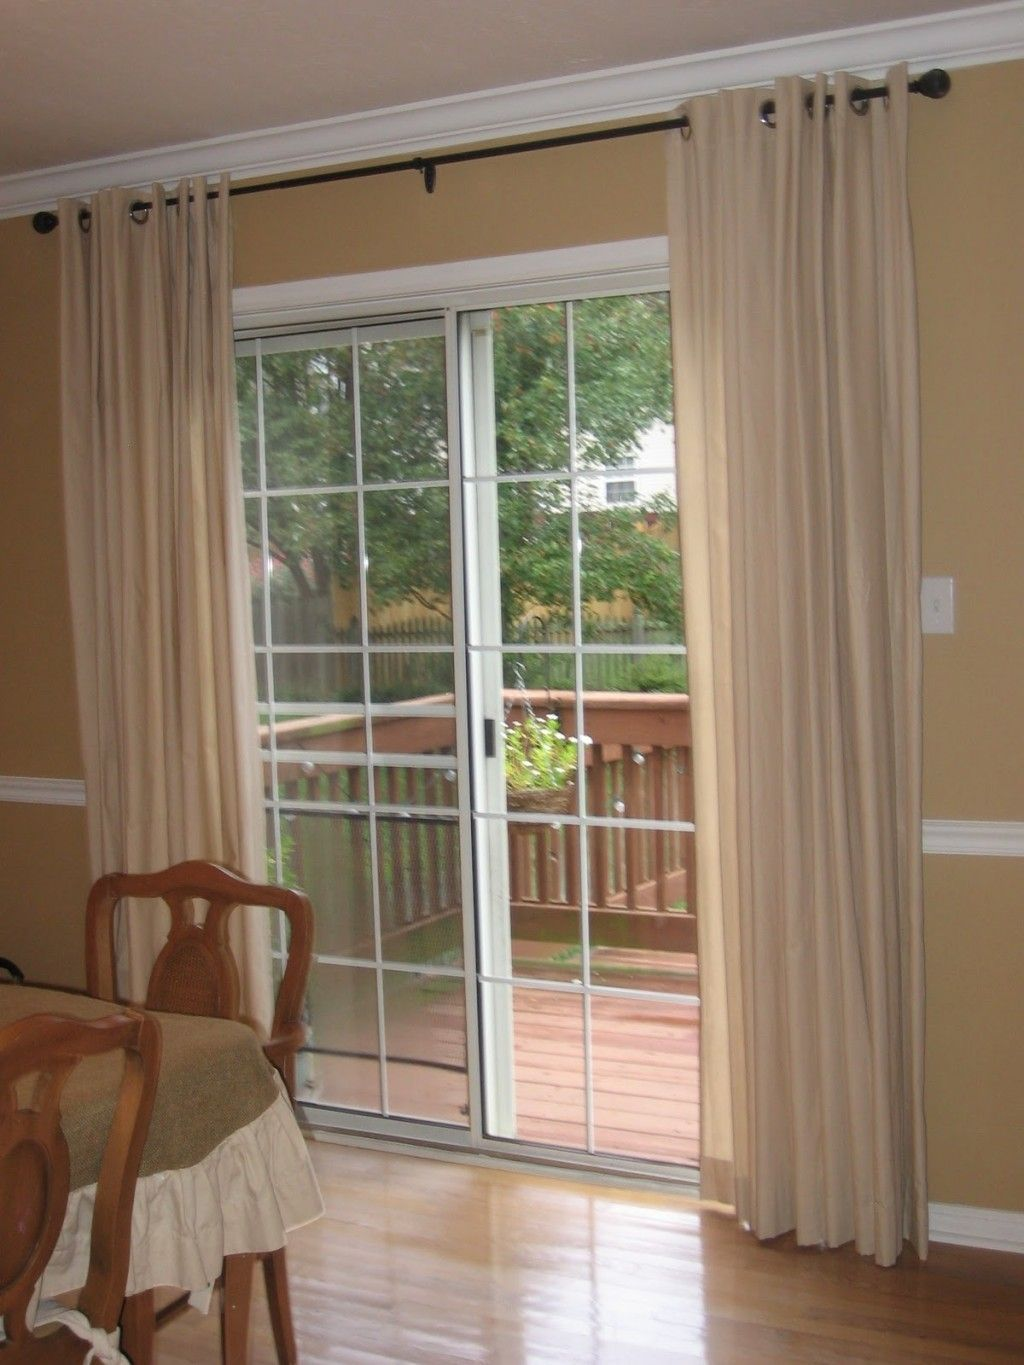 Schon Window Treatments For Sliding Glass Doors   Google Search Fenster  Jalousien, Balkon, Wohnzimmer,